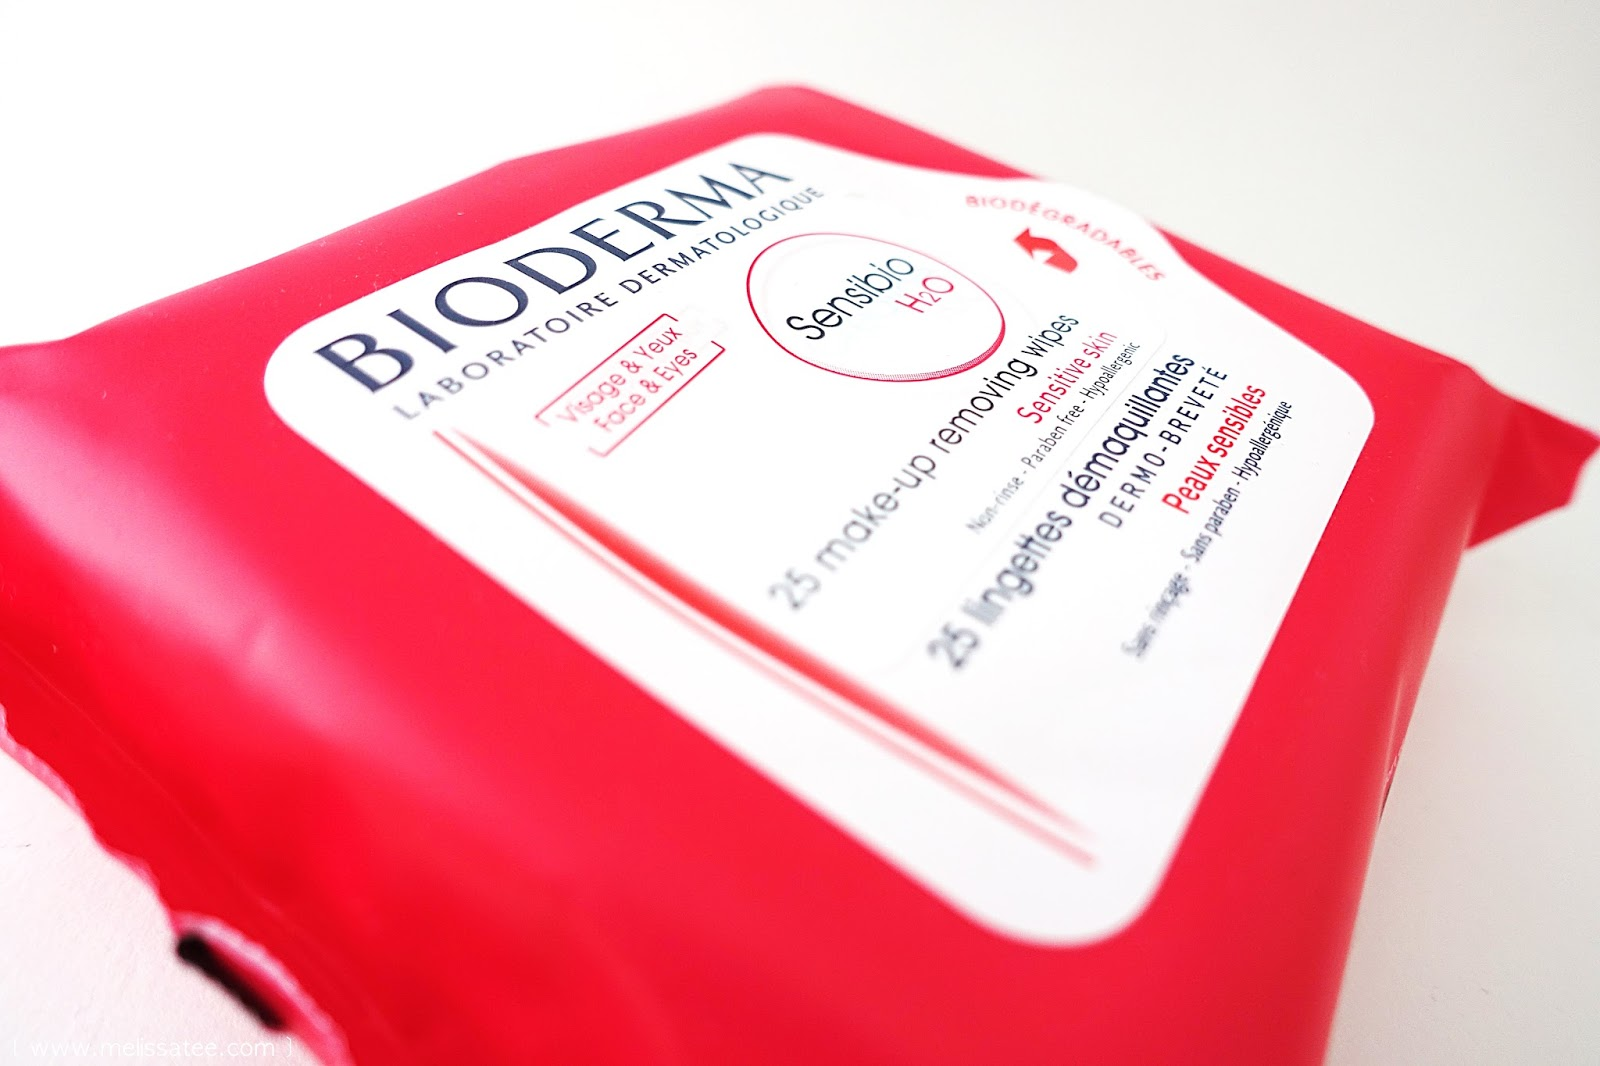 bioderma, bioderma sensibio h2o, bioderma sensibio h2o micelle water, bioderma sensibio h2o cleansing water, bioderma cleansing water, bioderma wipes, bioderma cleansing wipes, bioderma makeup removing wipes, bioderma makeup wipes